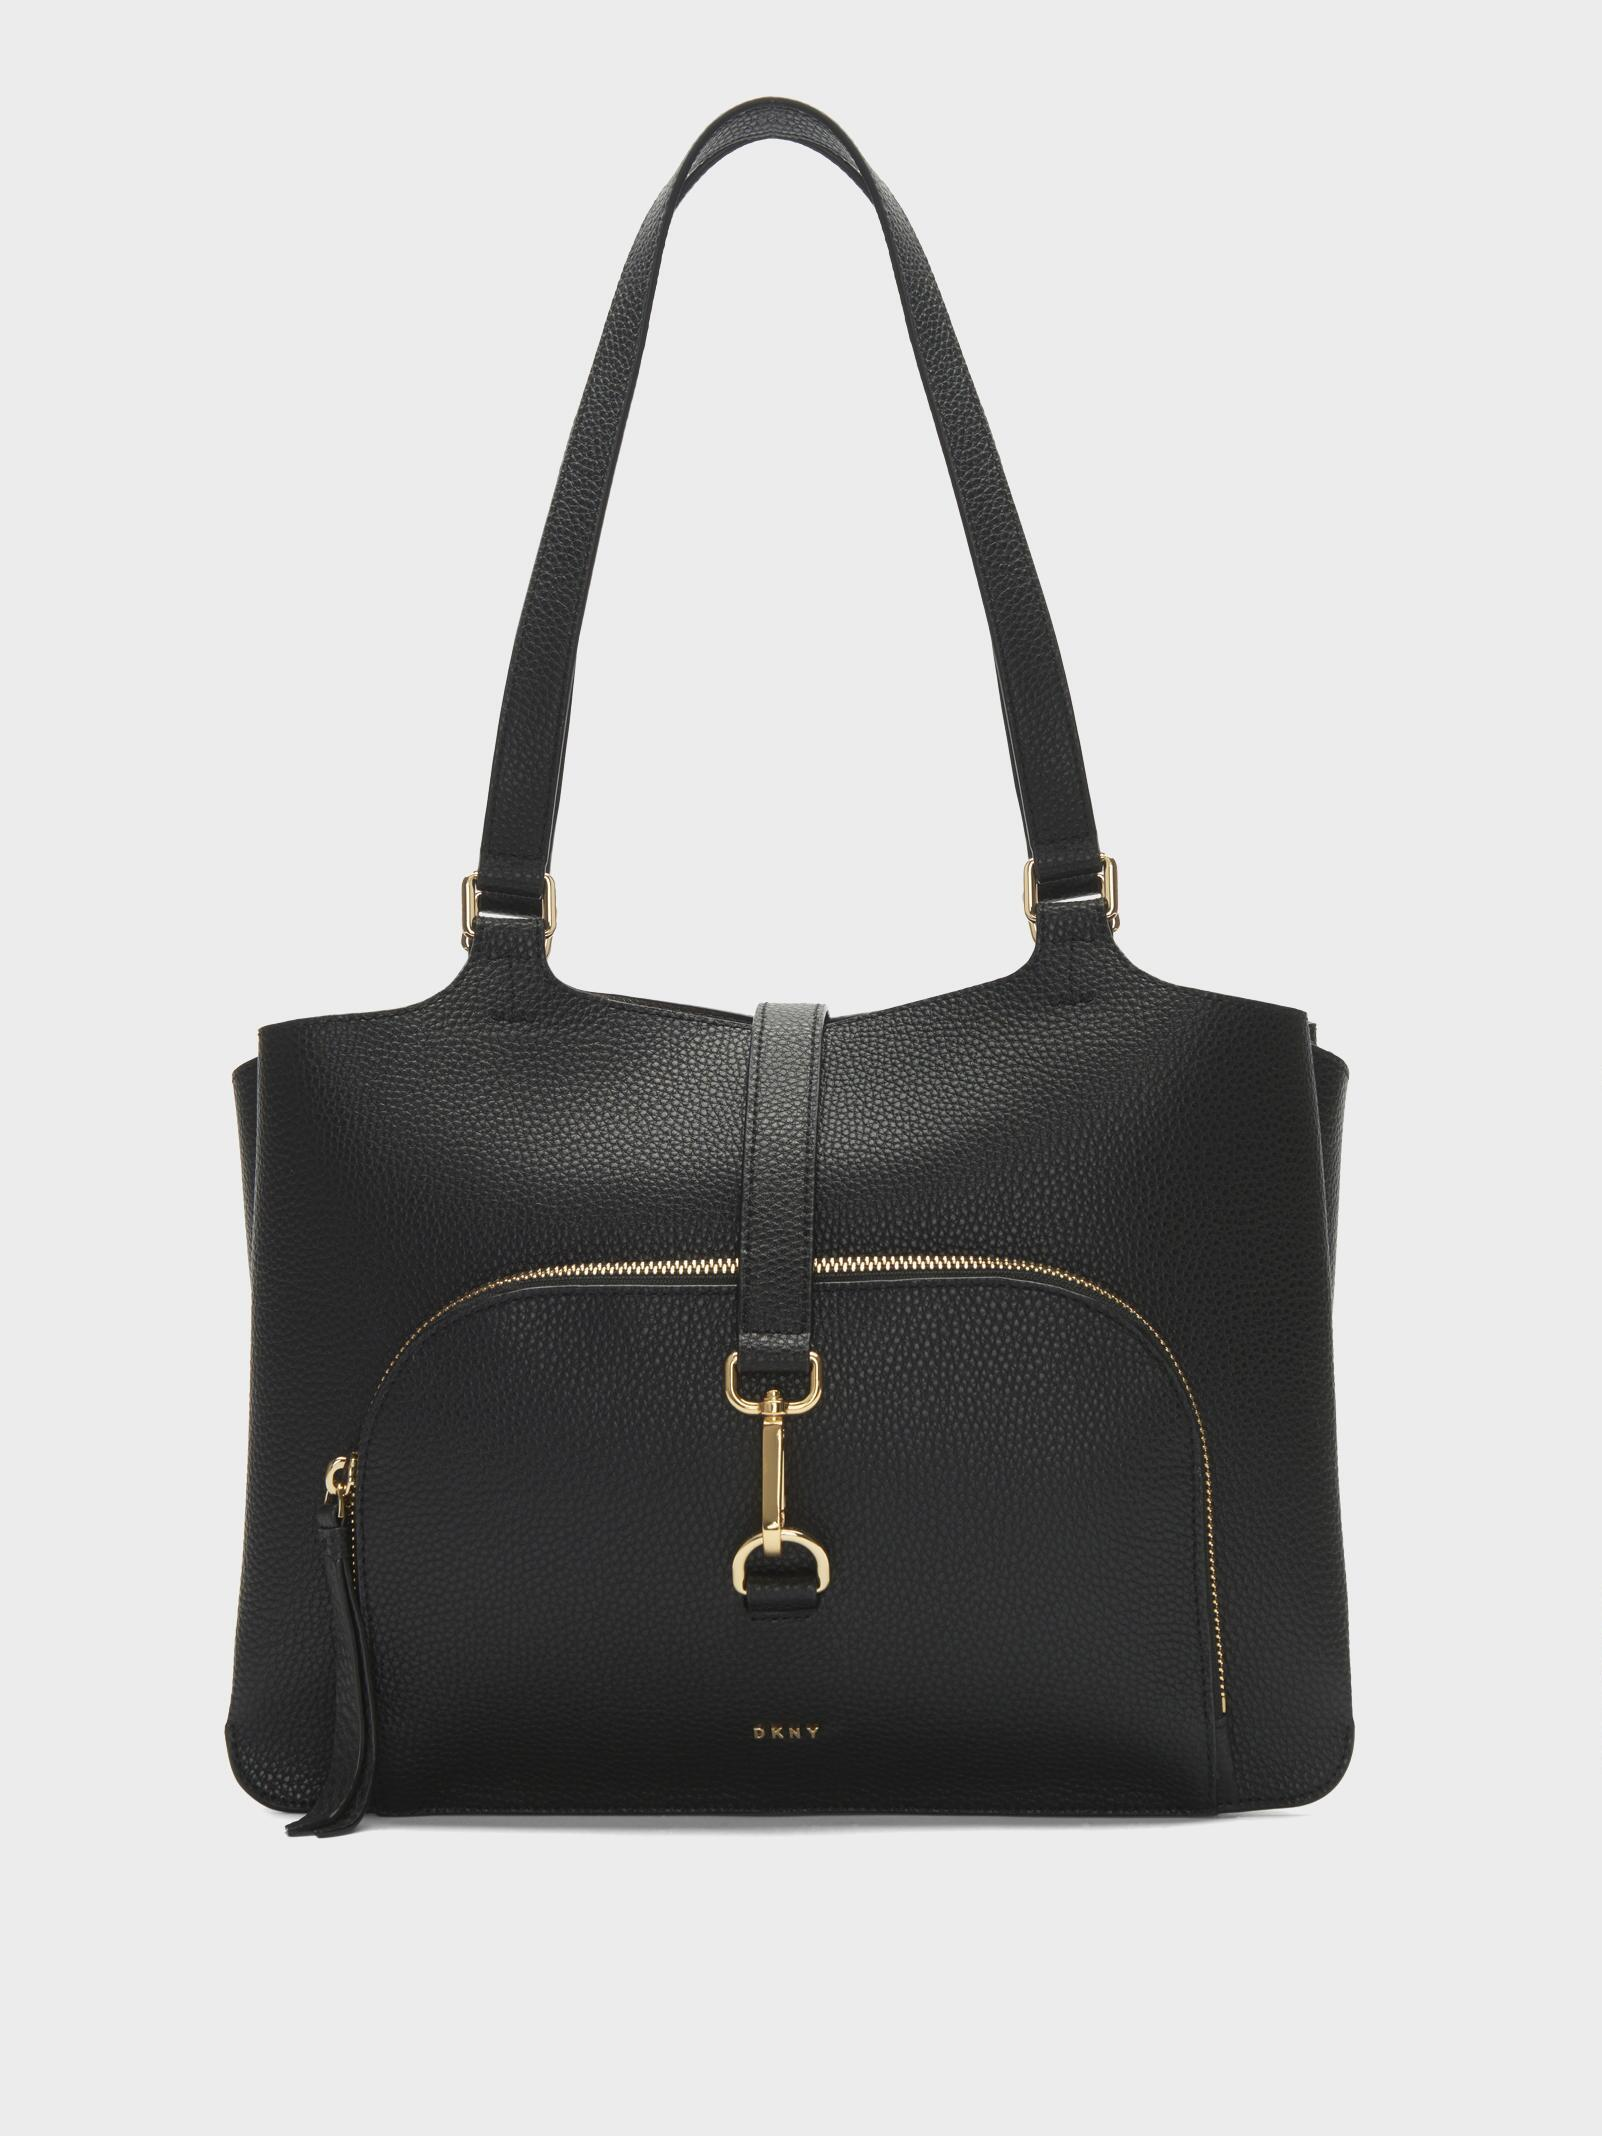 6f9cc60f911480 DKNY Paris Pebbled Leather Large Tote in Black - Lyst